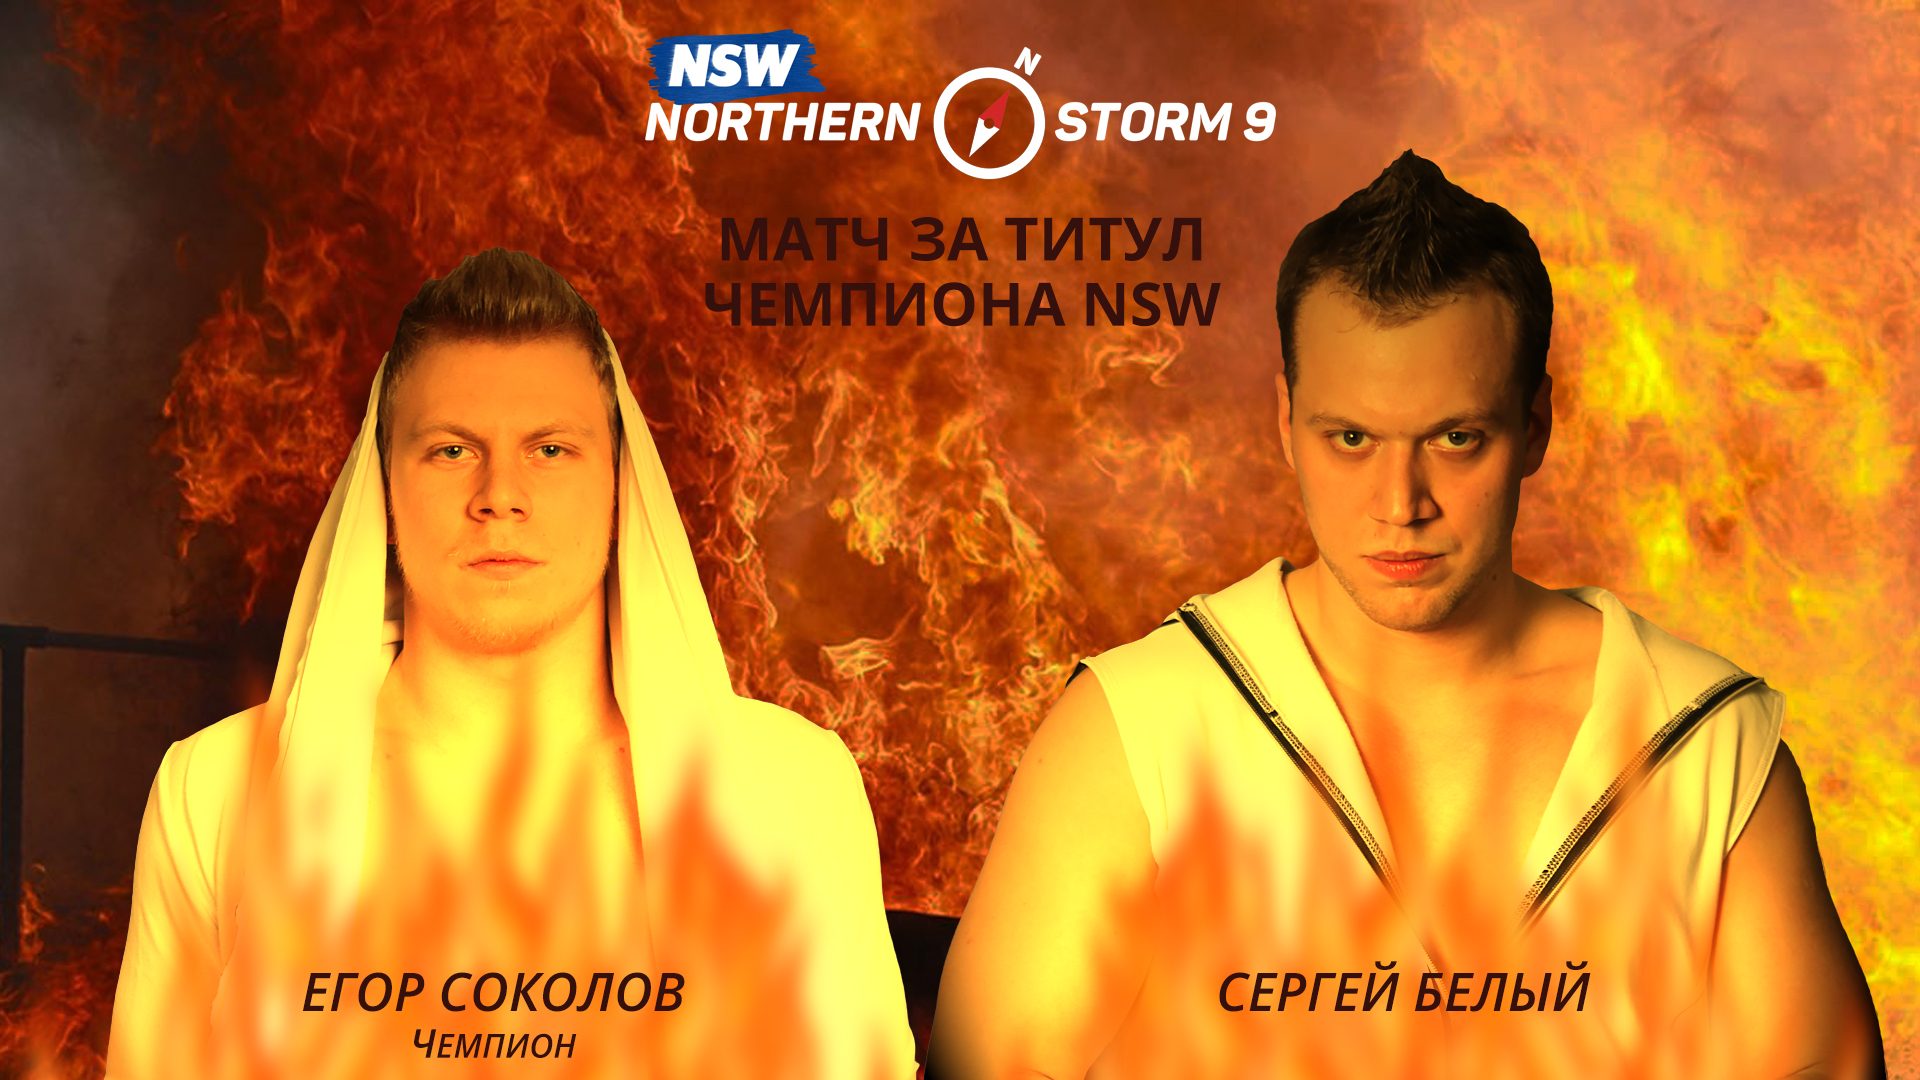 NSW Northern Storm 9: Егор Соколов против Сергея Белого